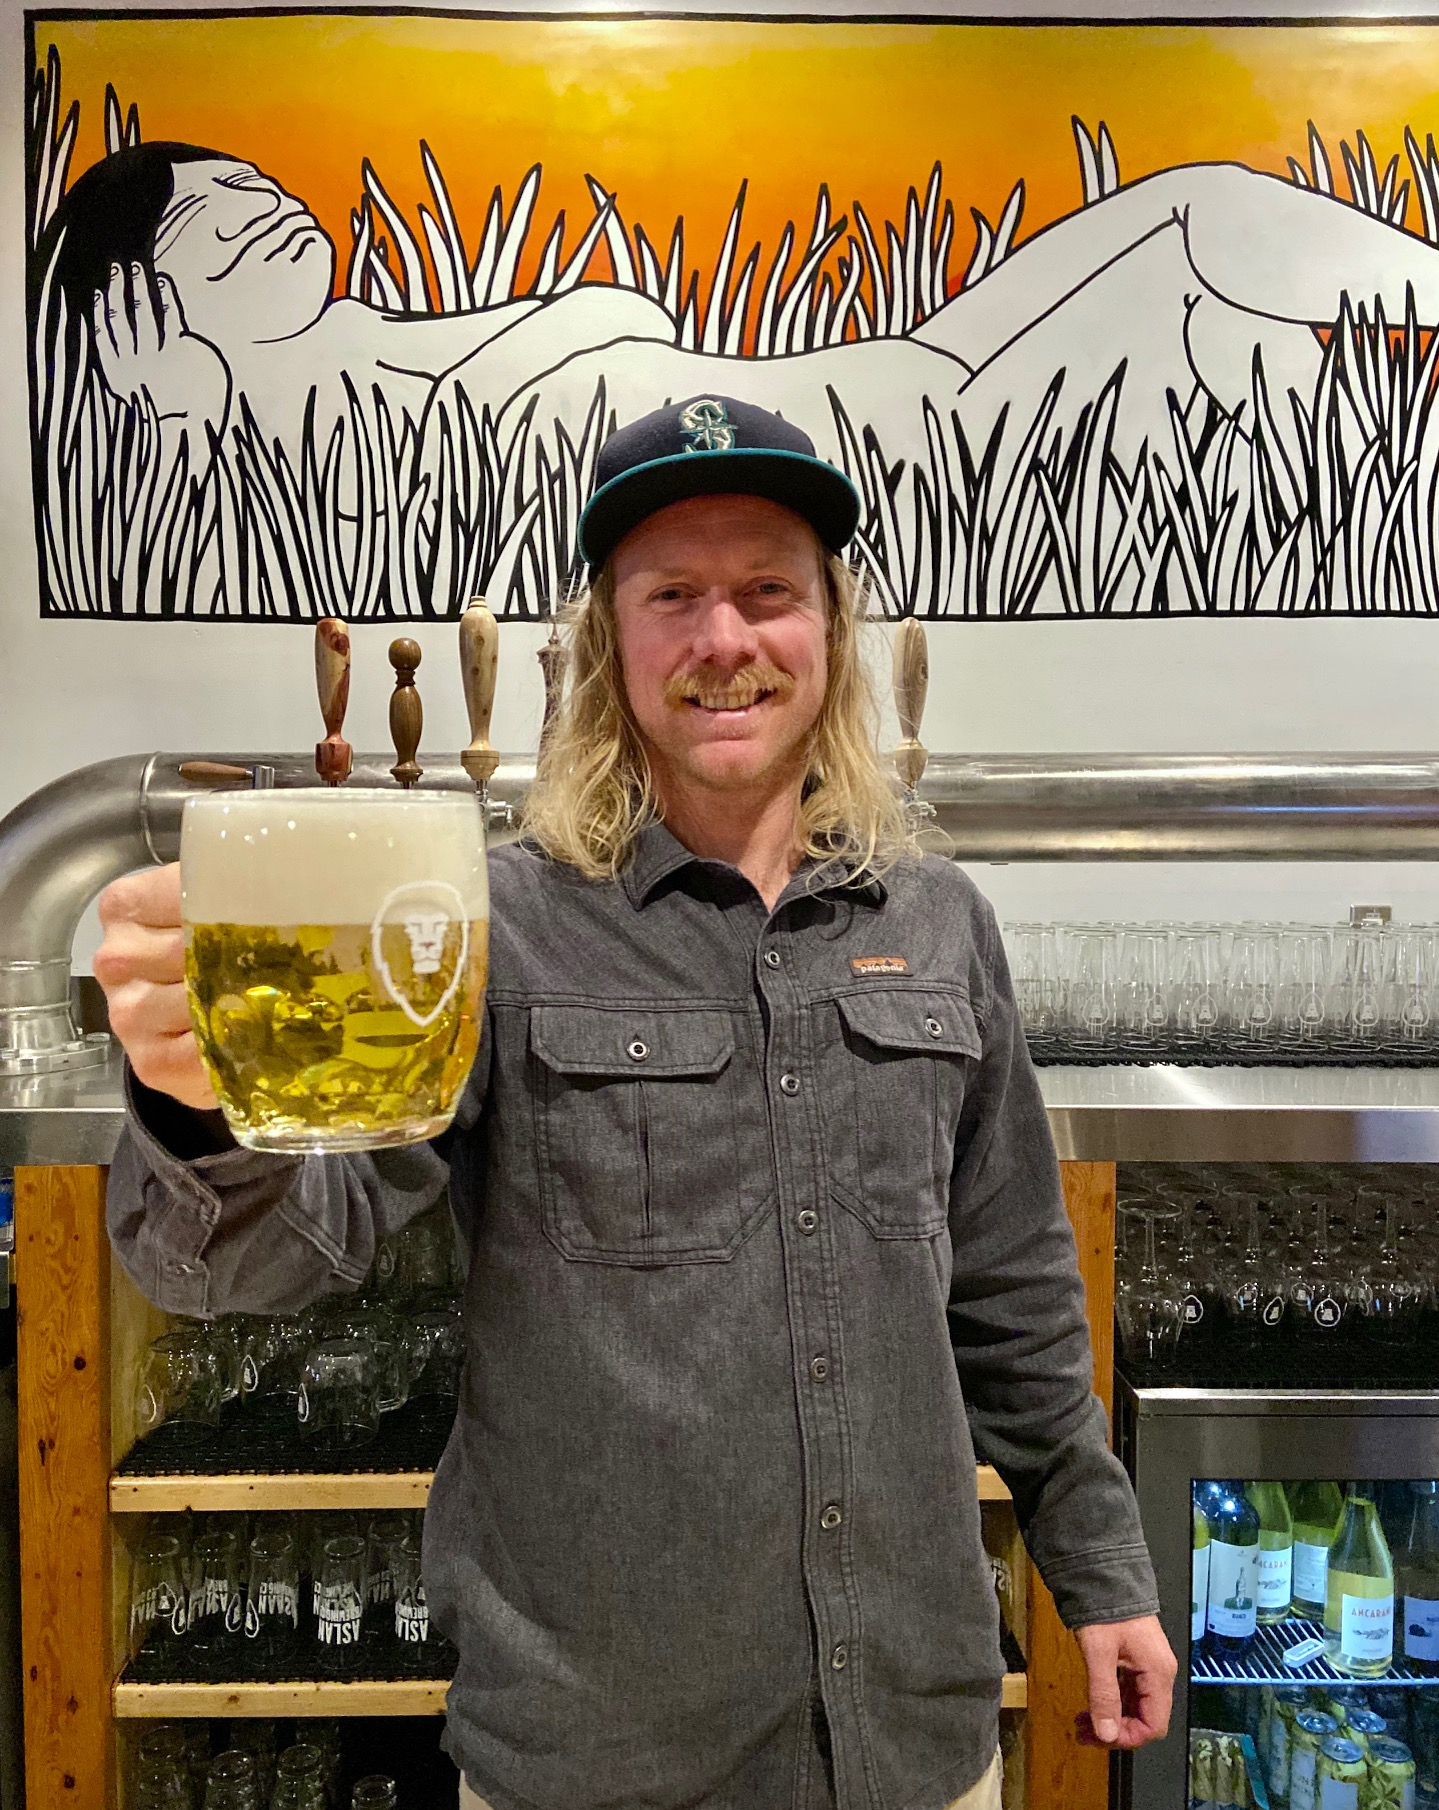 Co-Owner of Aslan Brewing, Boe Trosset at the new Aslan Brewing Seattle.